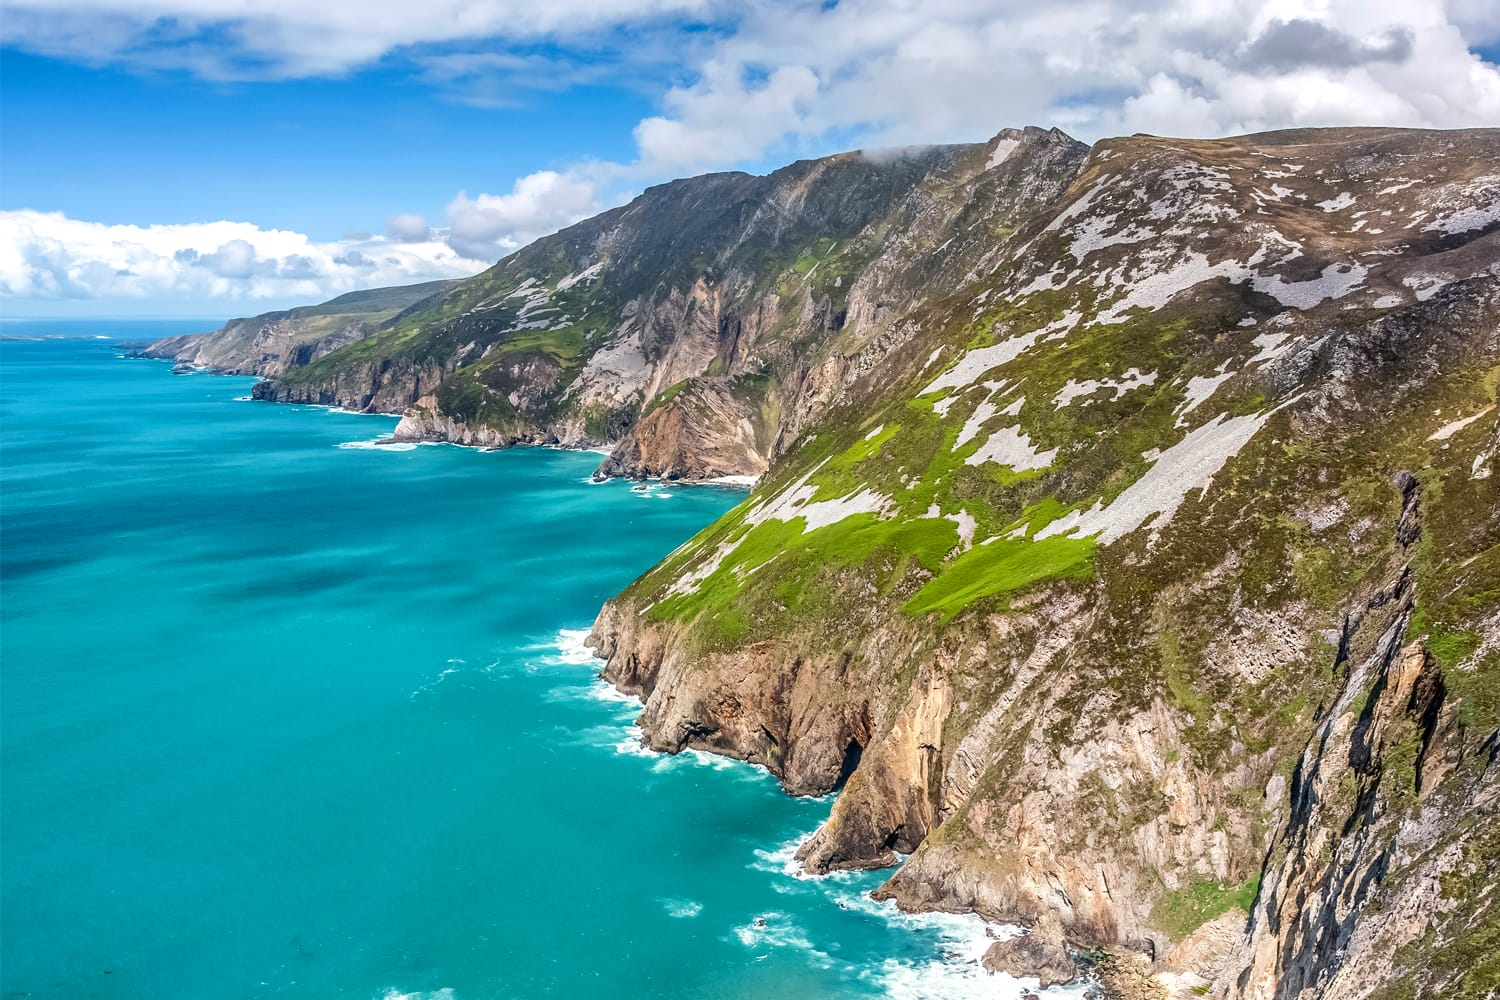 Ireland's tallest sea cliffs called Slieve League in County Donegal